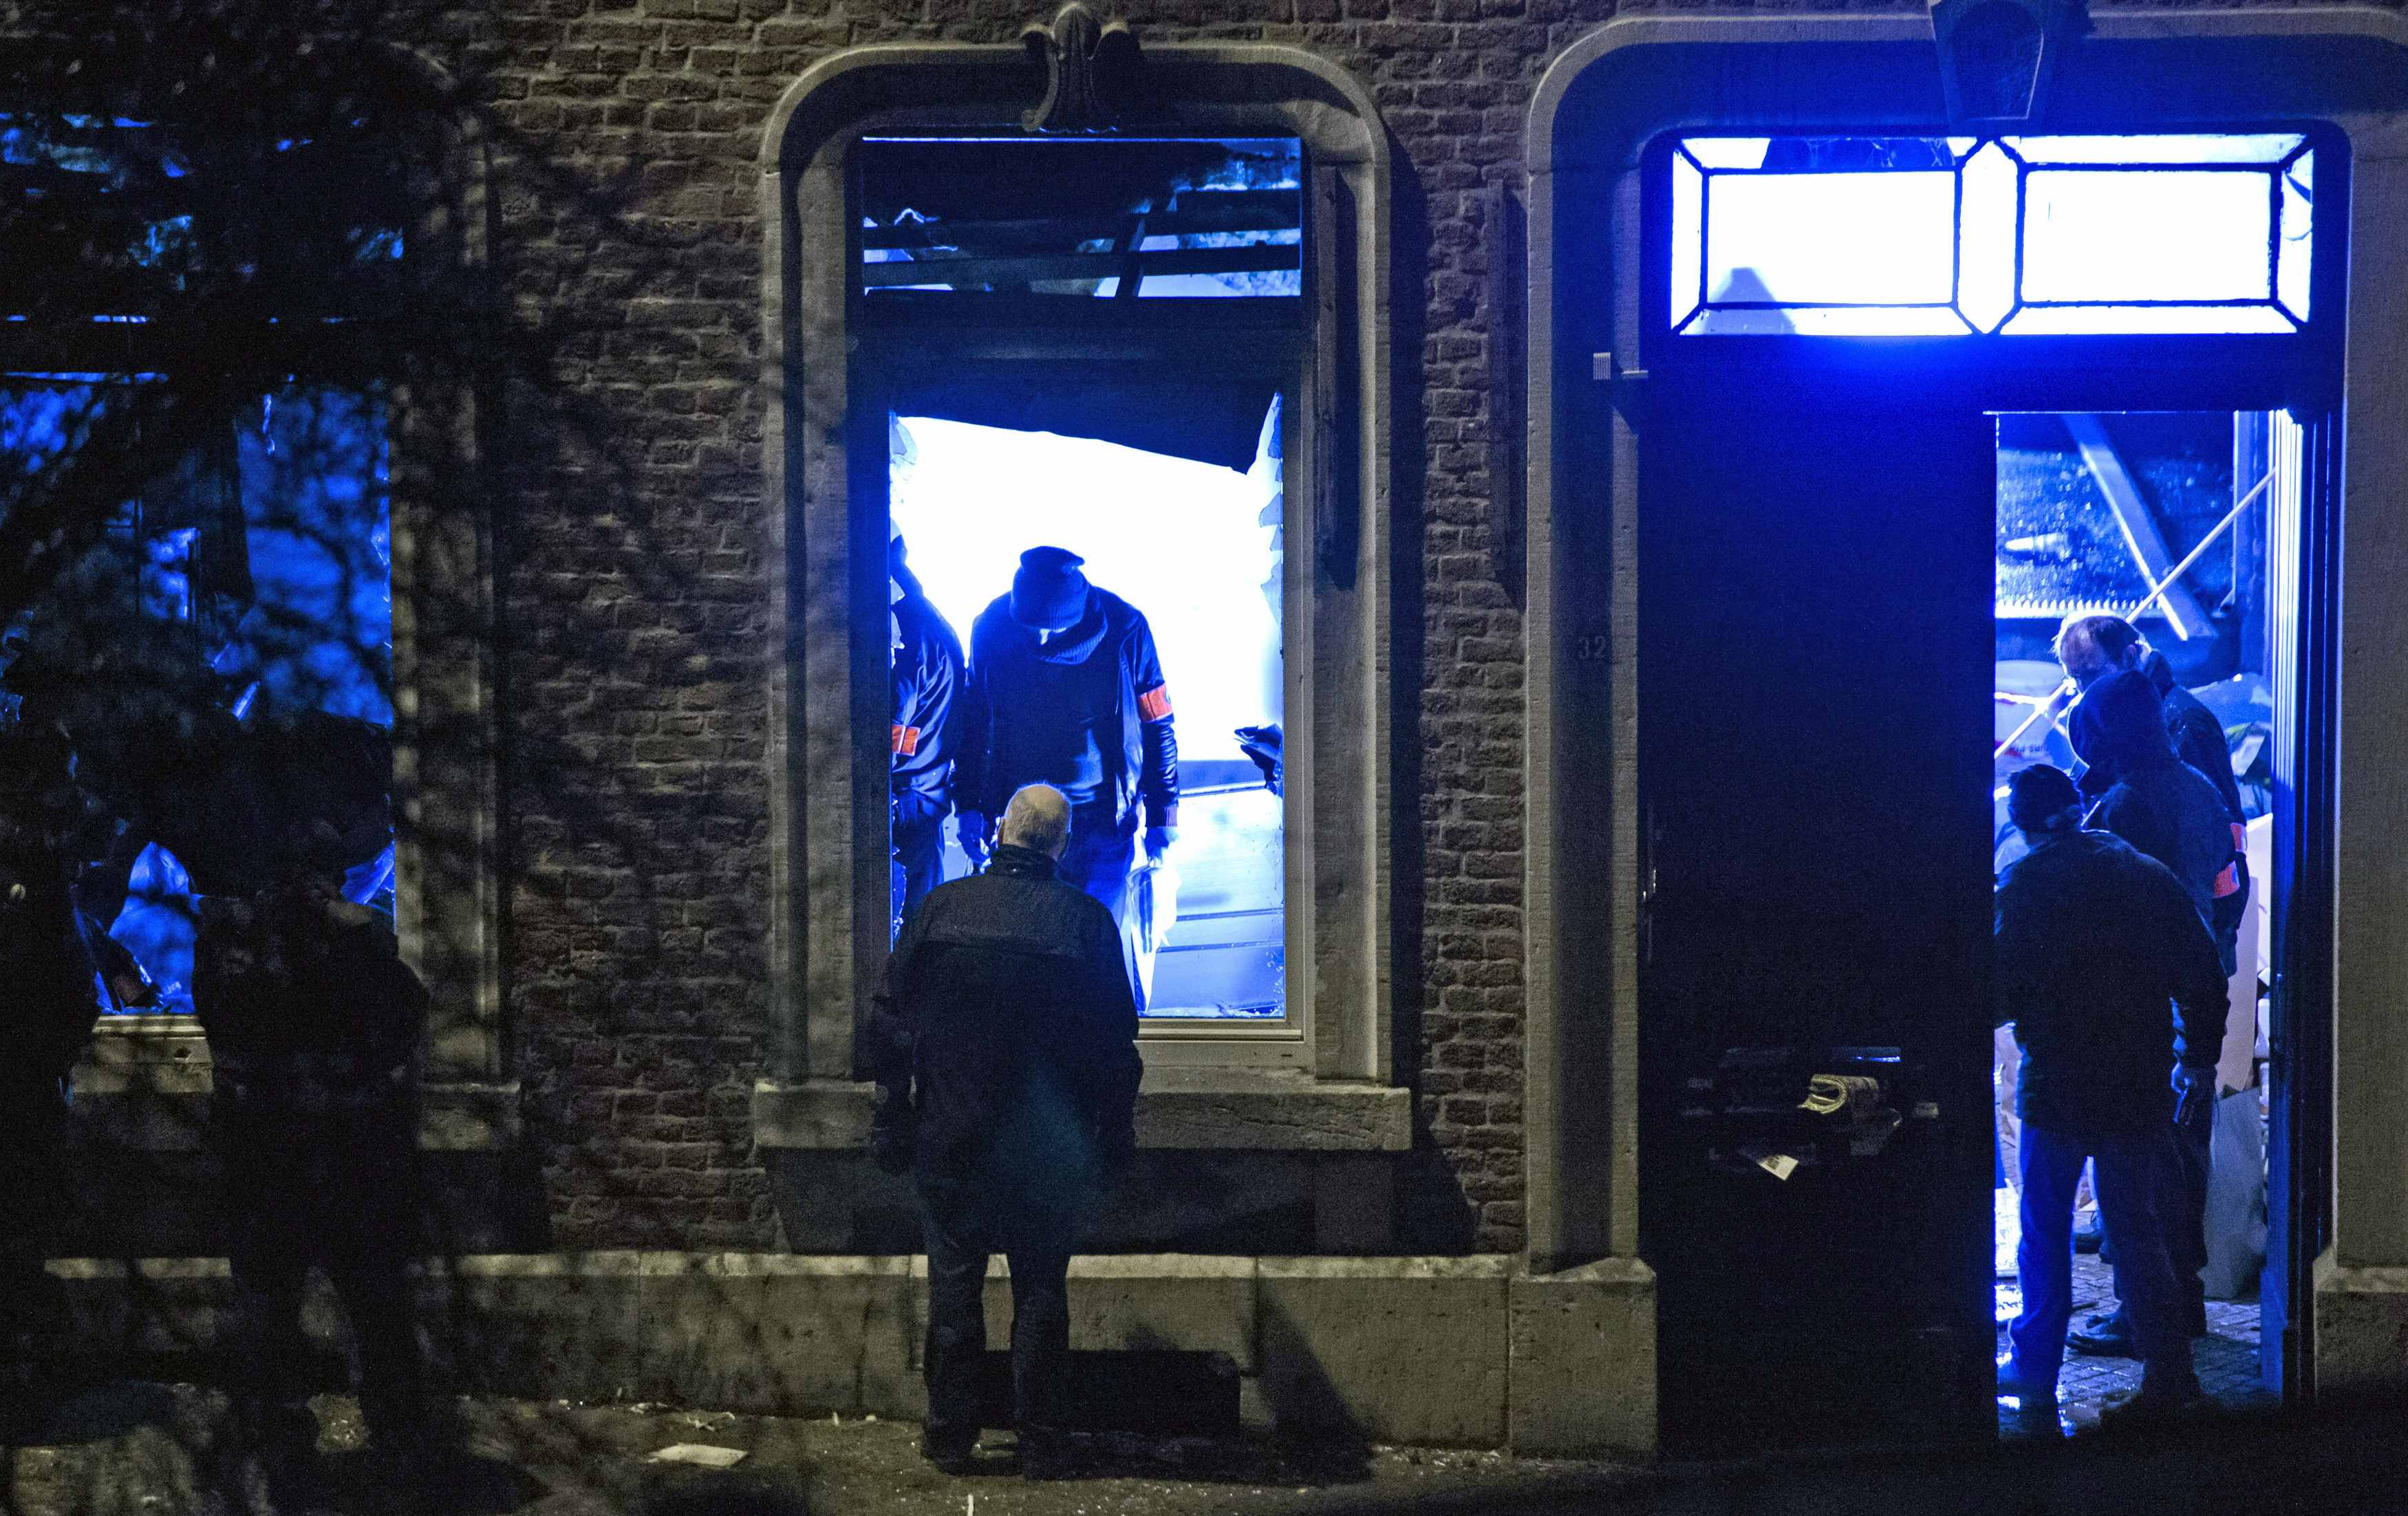 Belgium raises threat level after killing two suspects in anti-terror raid